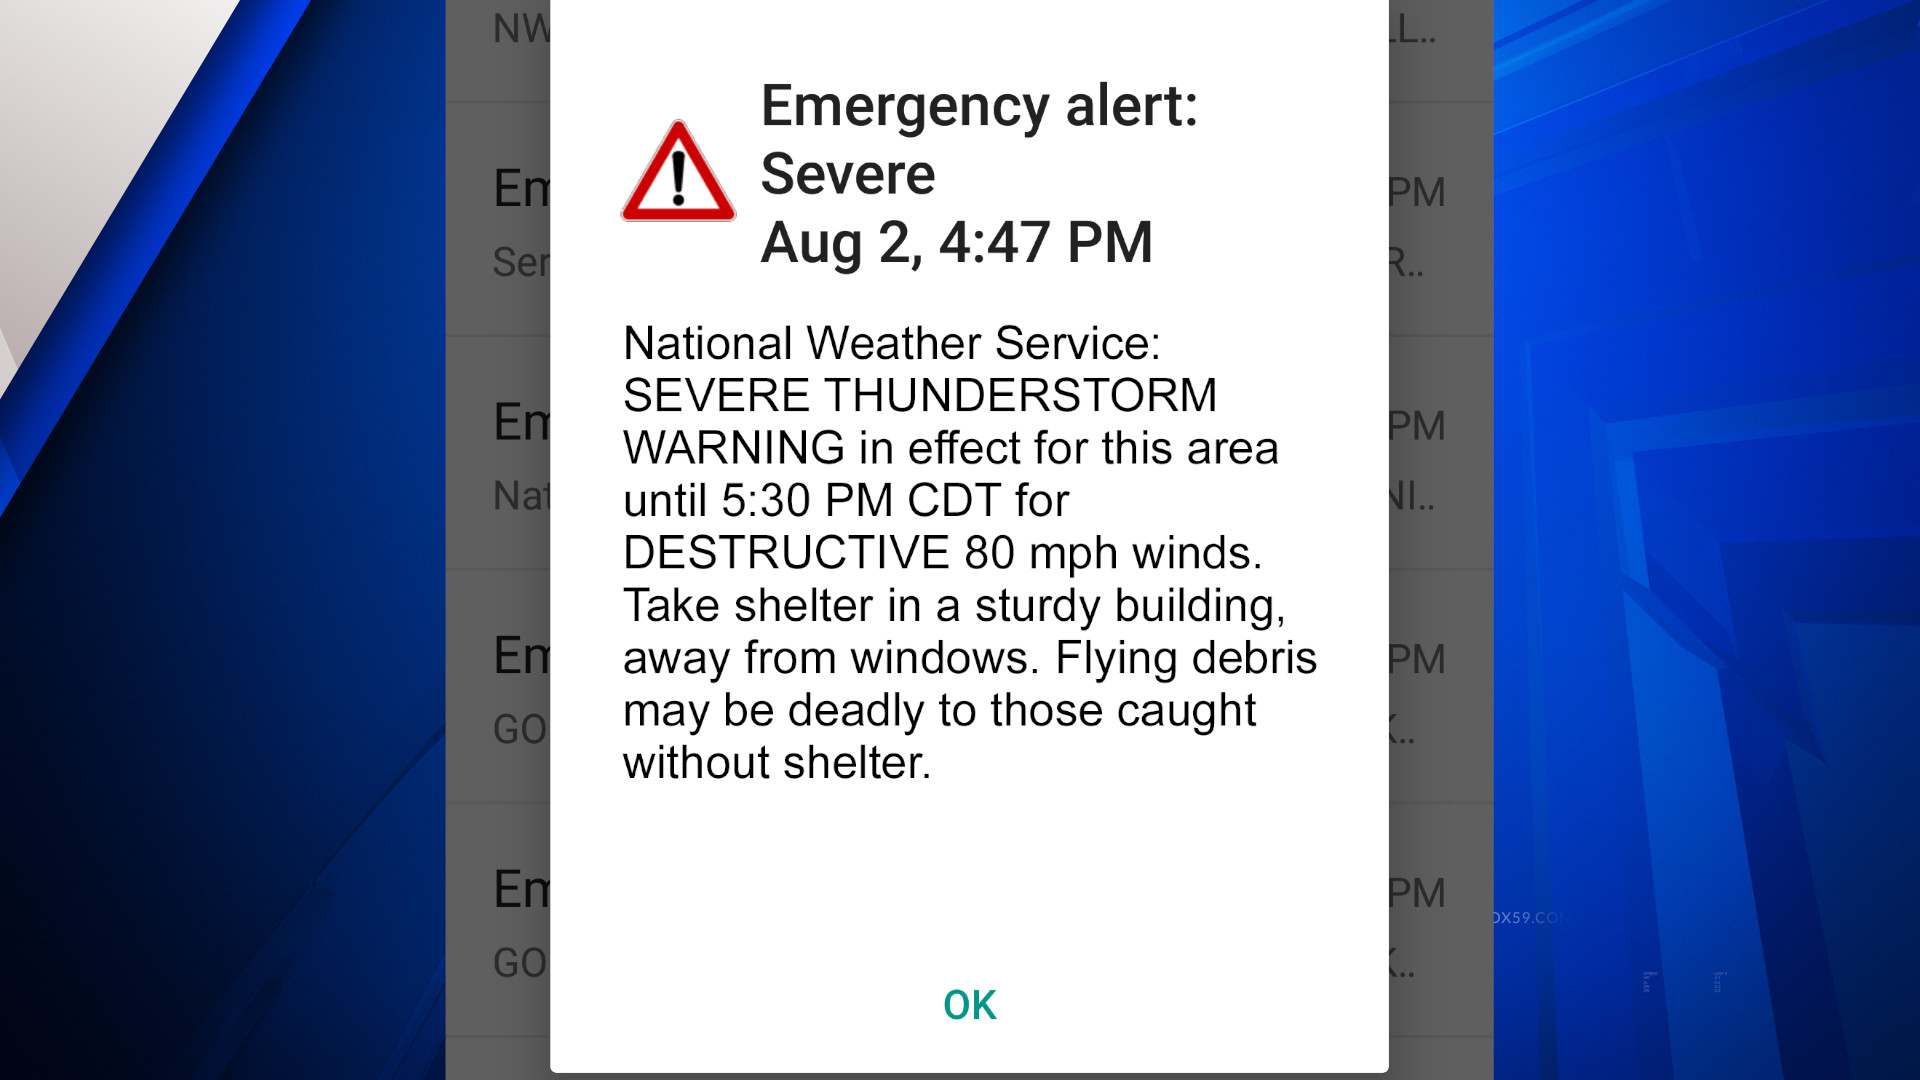 """New """"Destructive"""" Severe Thunderstorm Warning category to trigger Wireless Emergency Alerts on mobile phones"""